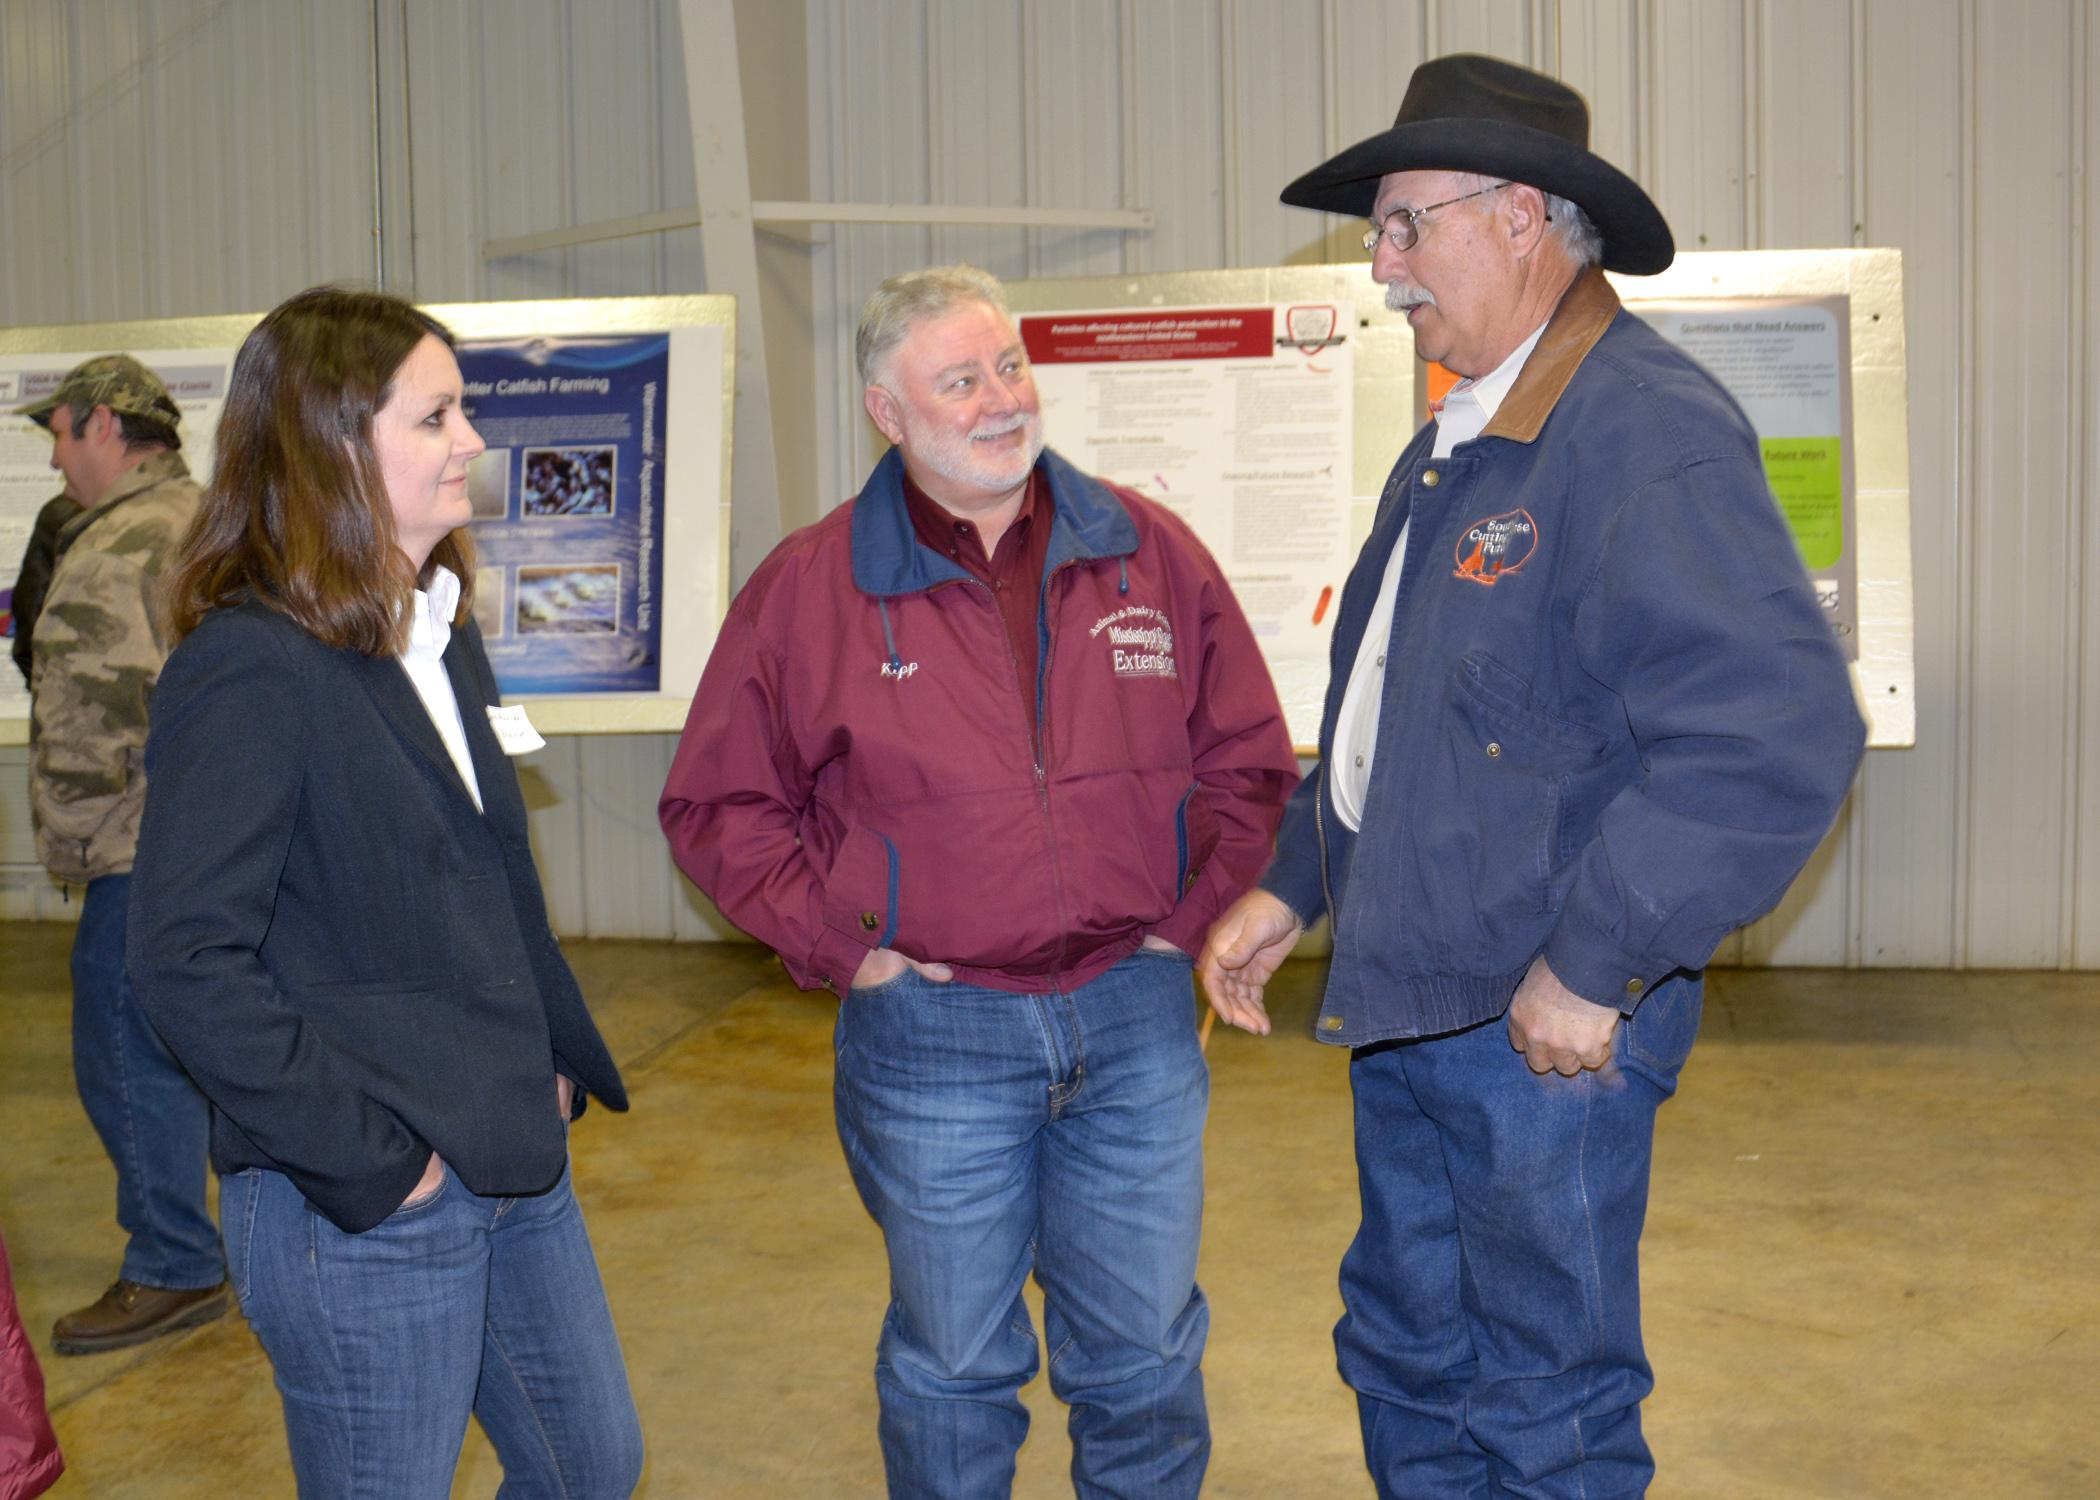 Jane Parish, extension and research professor of animal science with Mississippi State University, and Kipp Brown, area extension associate in Carroll County, visit with Webster County horseman John Fondren at the North Mississippi Research and Extension Center Producer Advisory Council meeting in Verona, Mississippi, on Feb. 19, 2015. (Photo by MSU Ag Communications/Linda Breazeale)